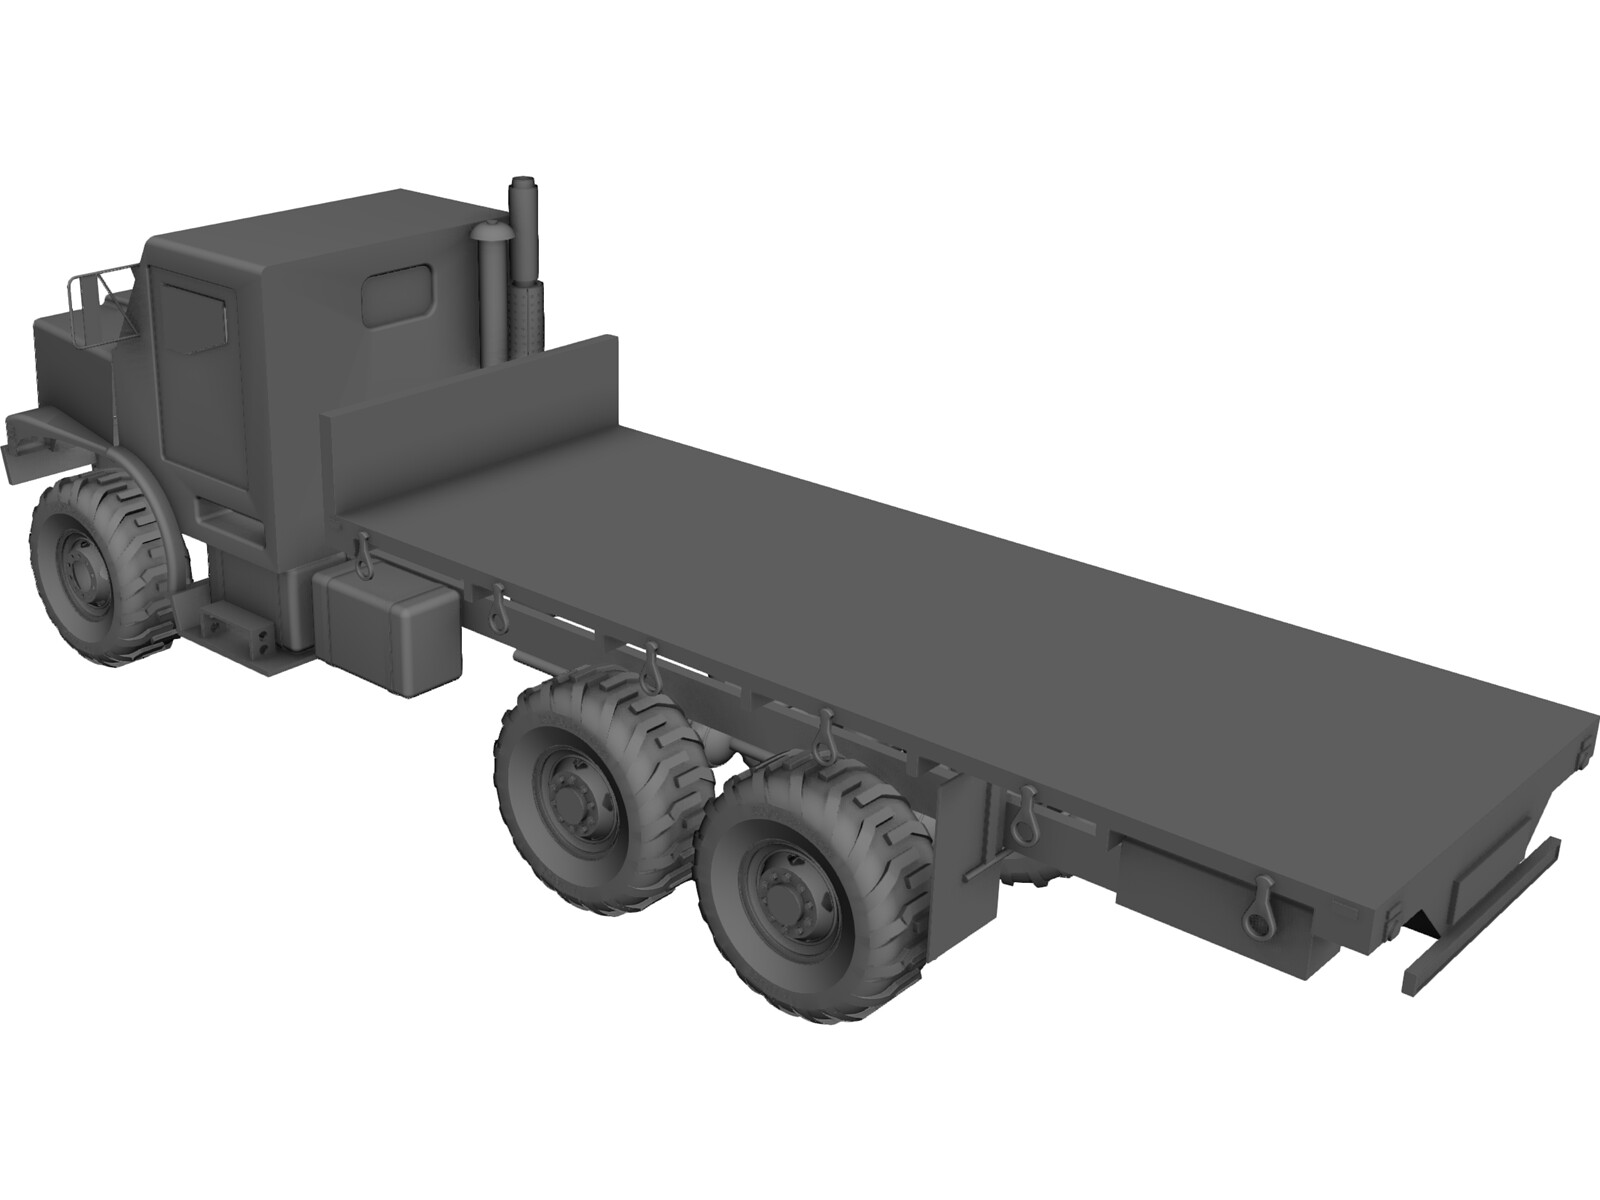 OshKosh MTVR MK27 Military 3-Axle Truck 3D CAD Model